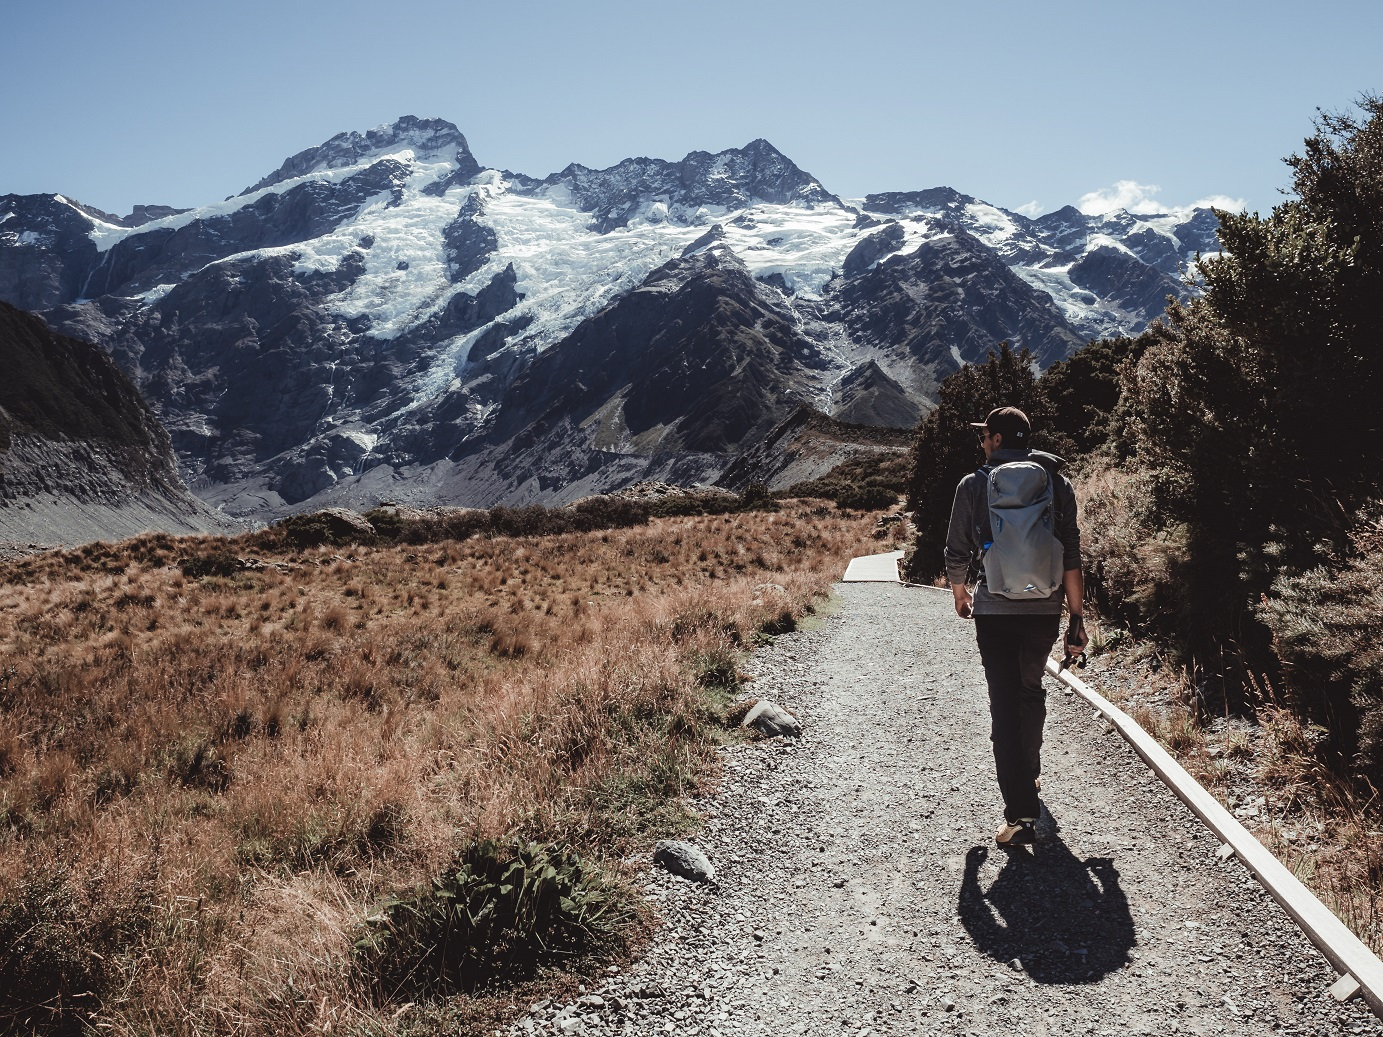 A guy hiking in Hooker Valley, Aoraki/Mt. Cook National Park, New Zealand